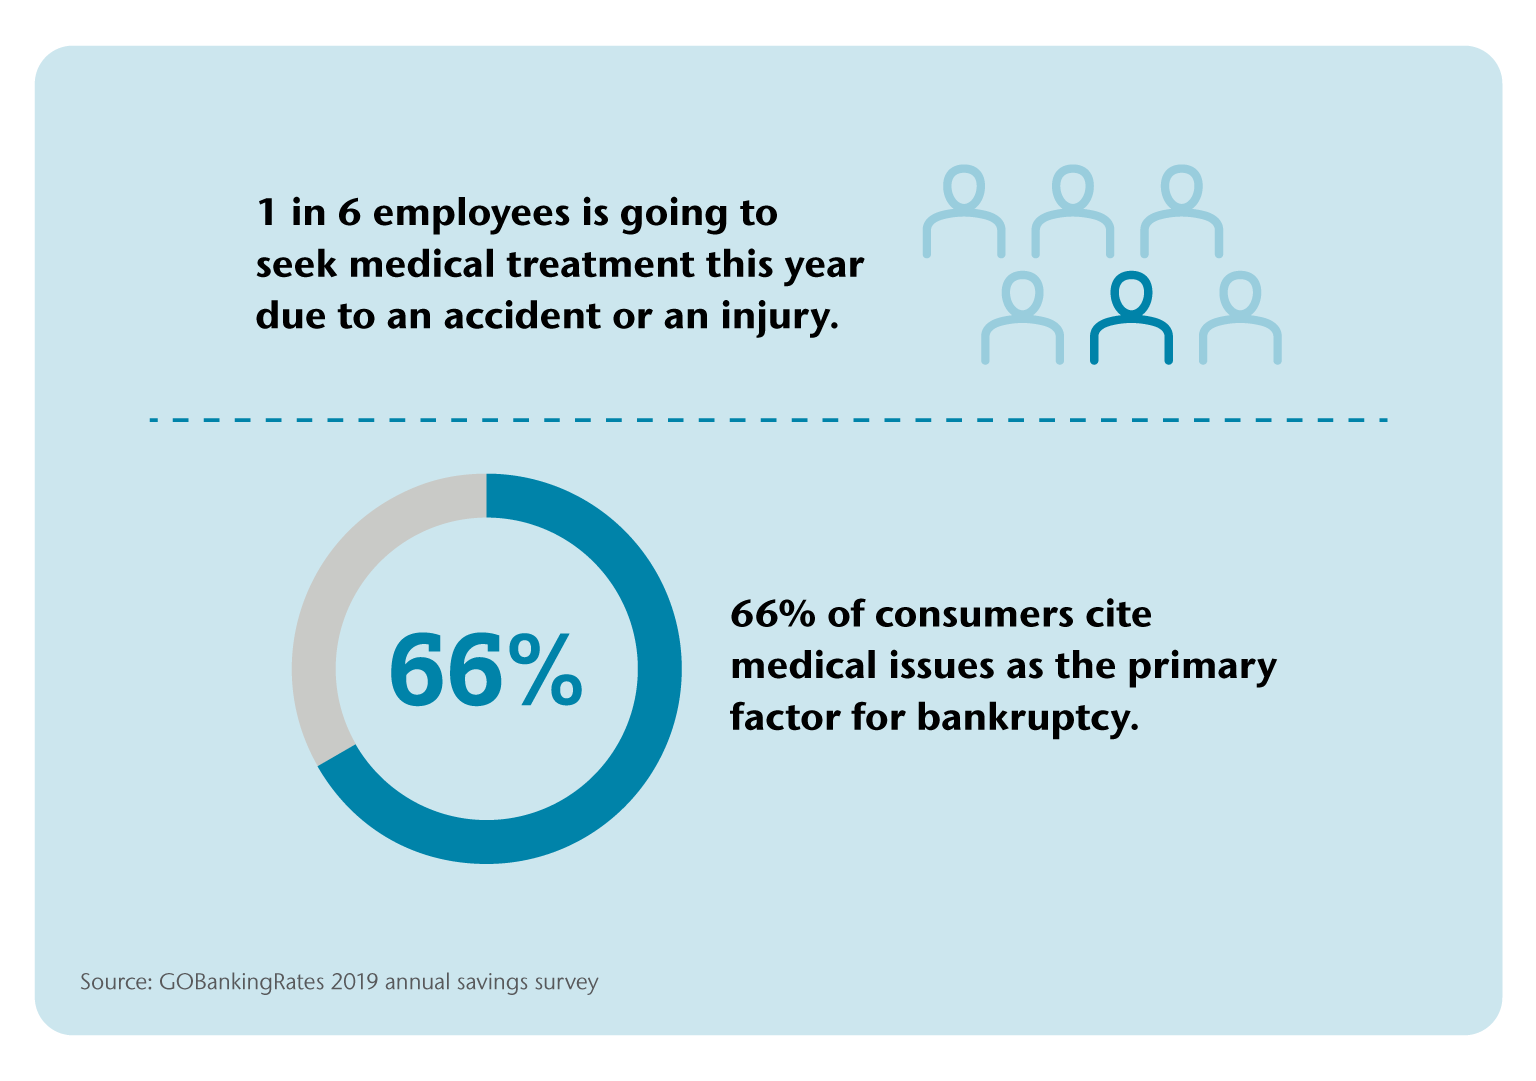 1 in 6 employees are going to seek medical treatment this year due to an accident or an injury